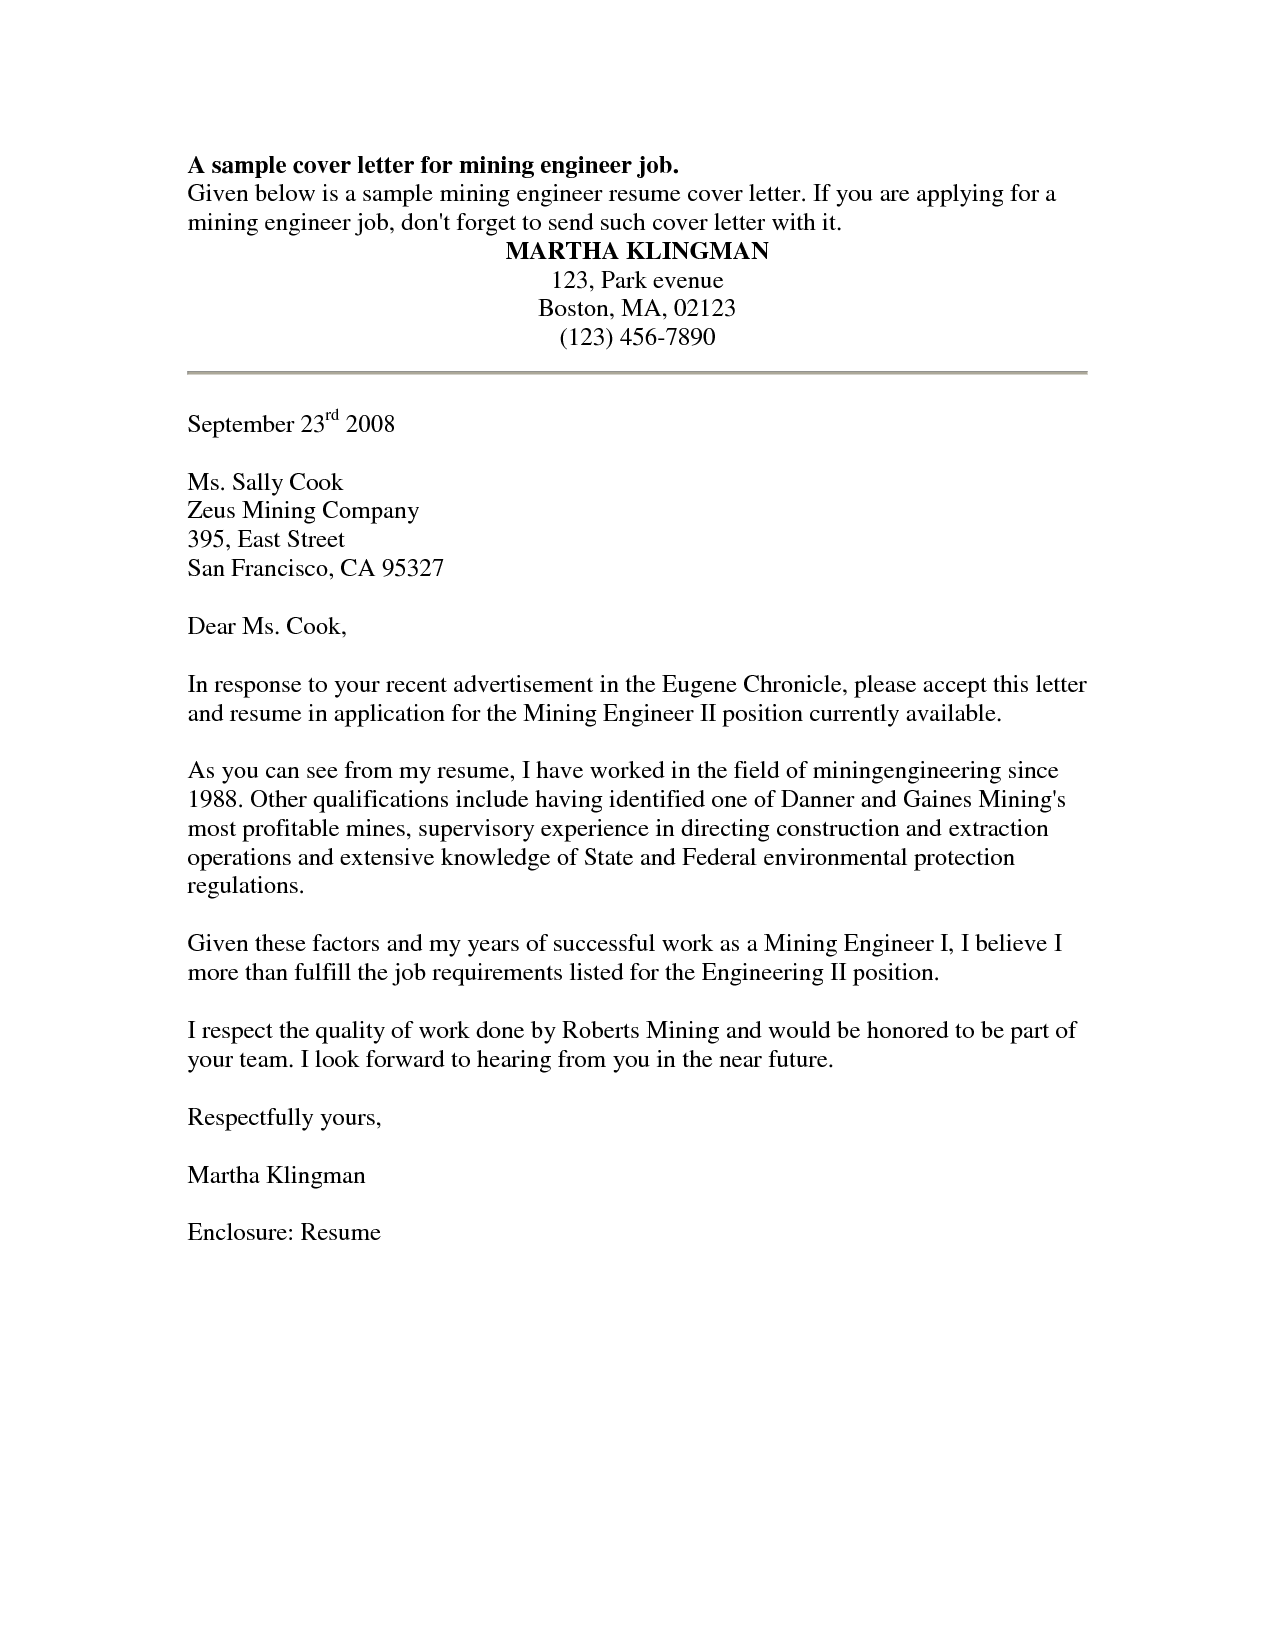 Sample Cover Letters For Resume Cover Letter Sample Free Sample Job Cover Letter For Resumecover